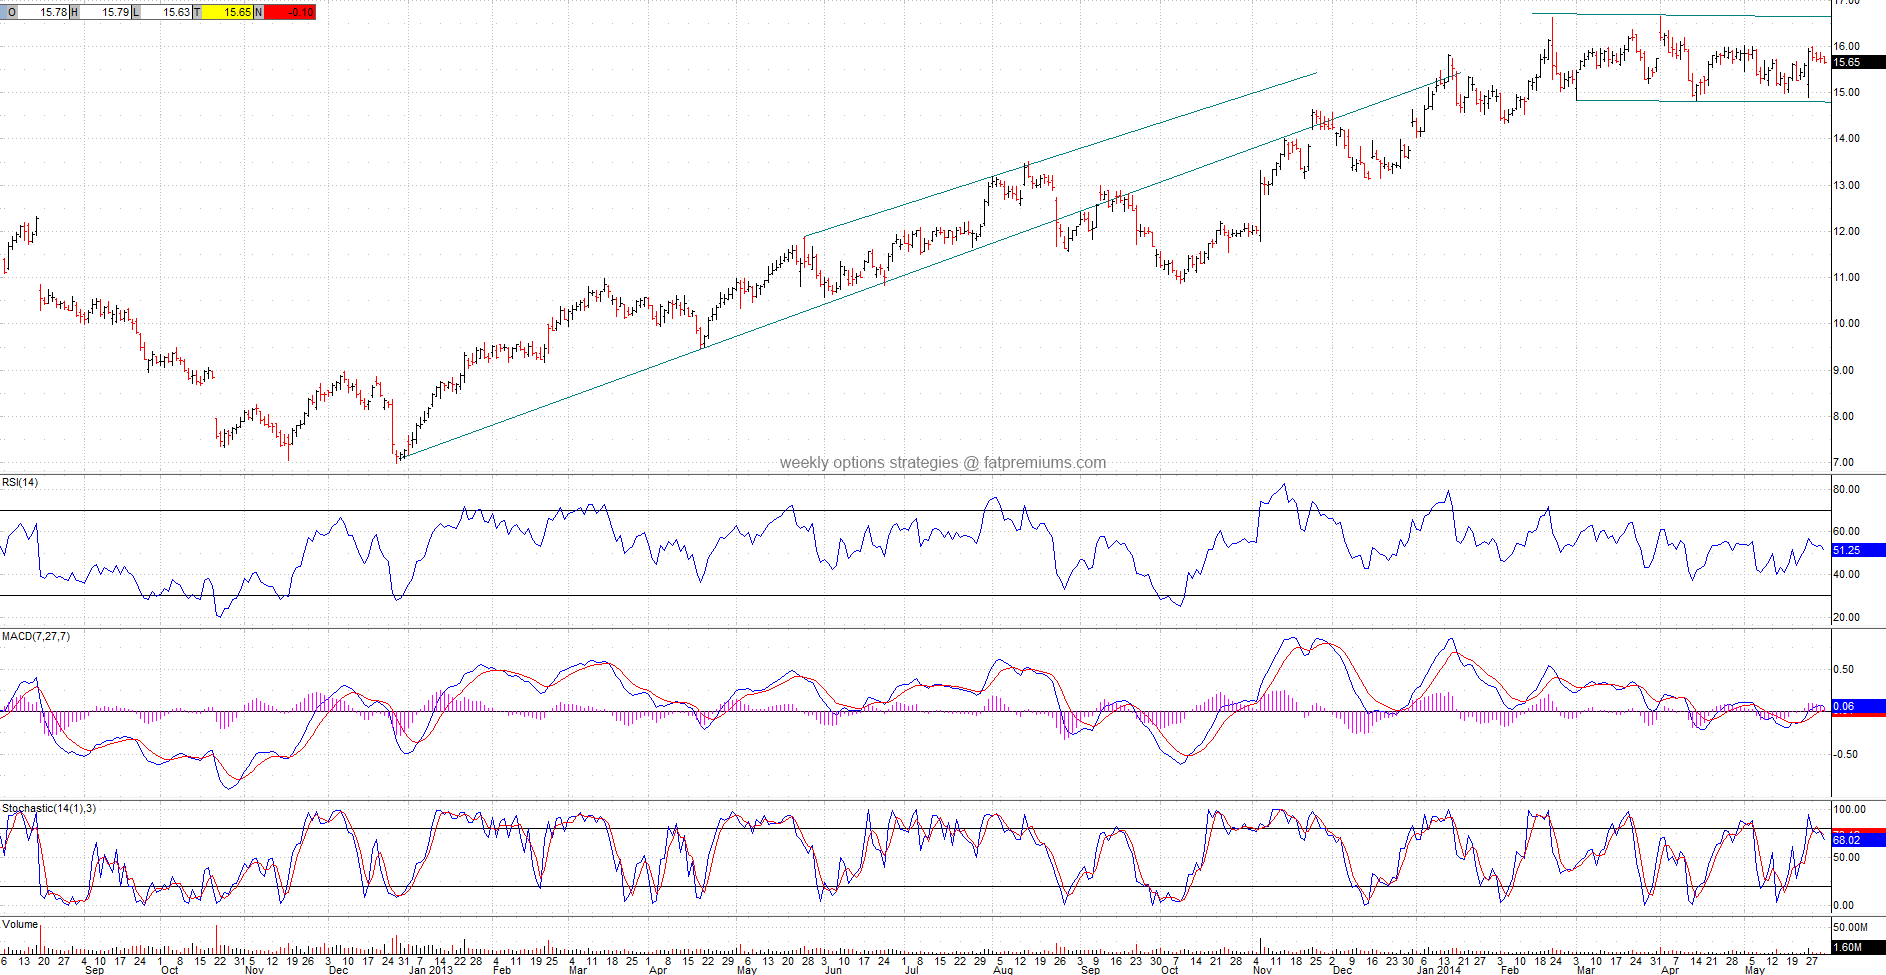 Marvell Technology Group (NASDAQ:MRVL) Daily Chart (2014-05-30) Neutral